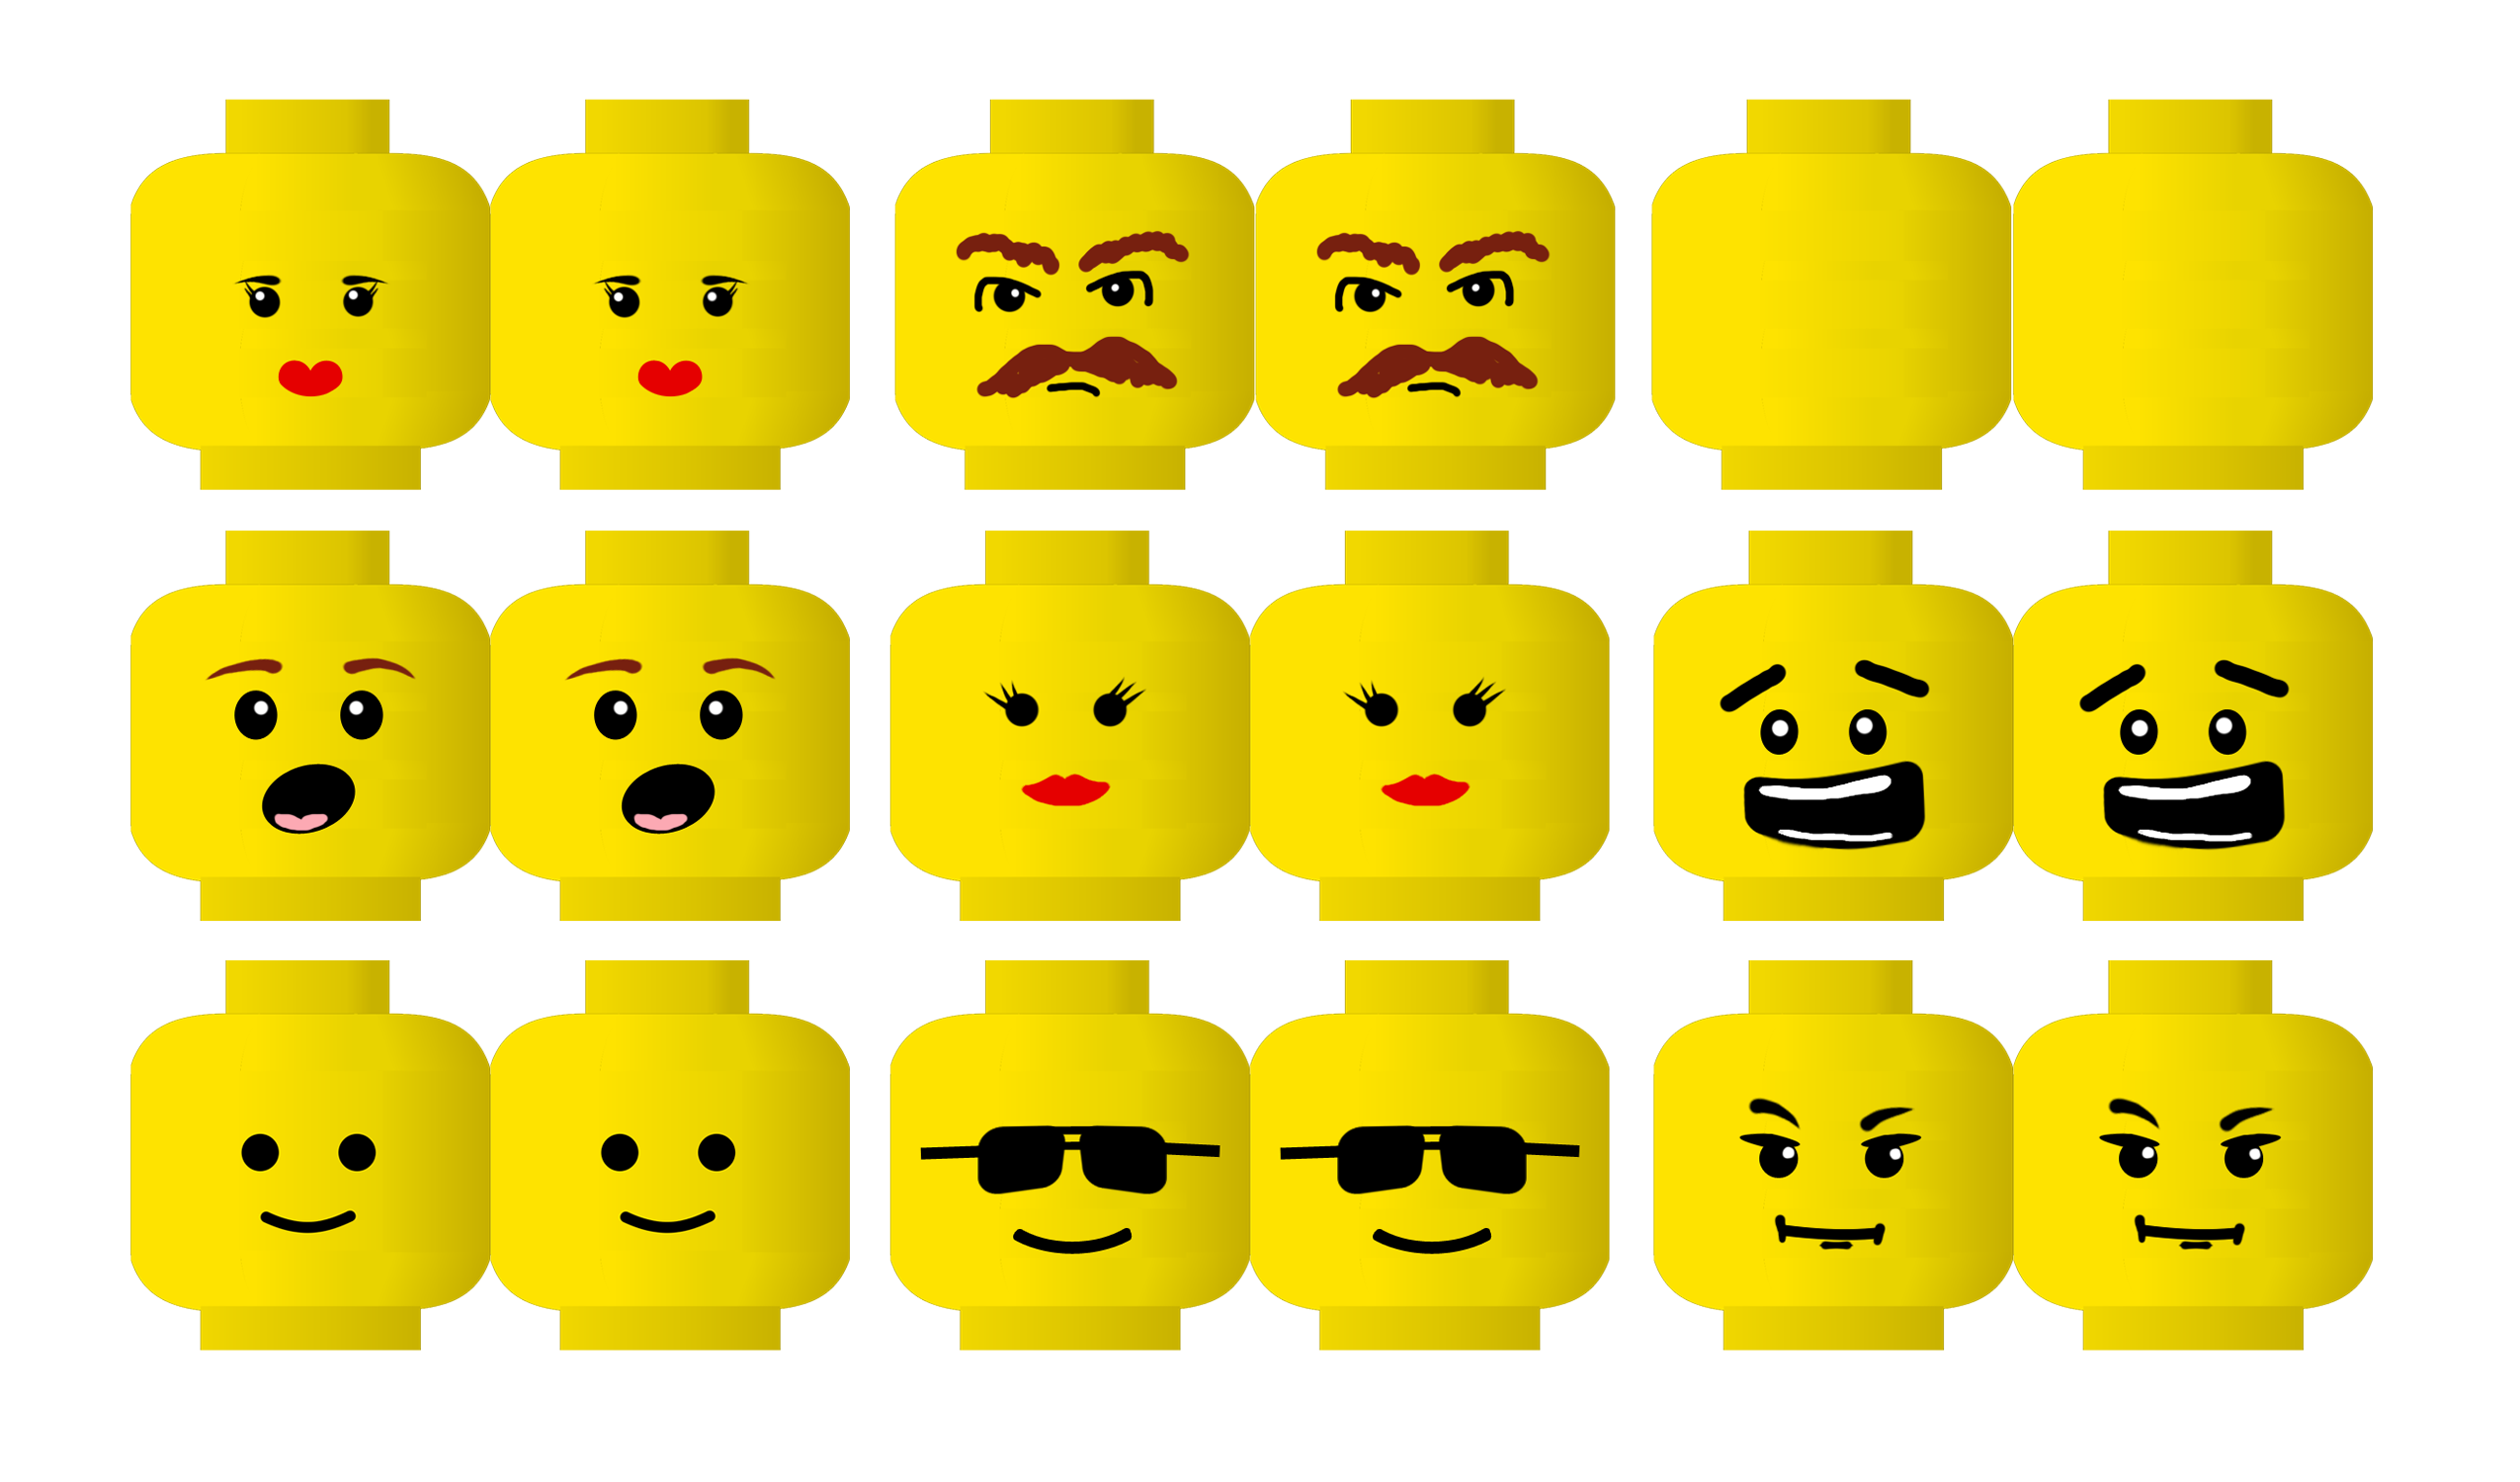 photograph regarding Lego Head Printable identified as lego minifigure brain printable - Google Glimpse Coloration my